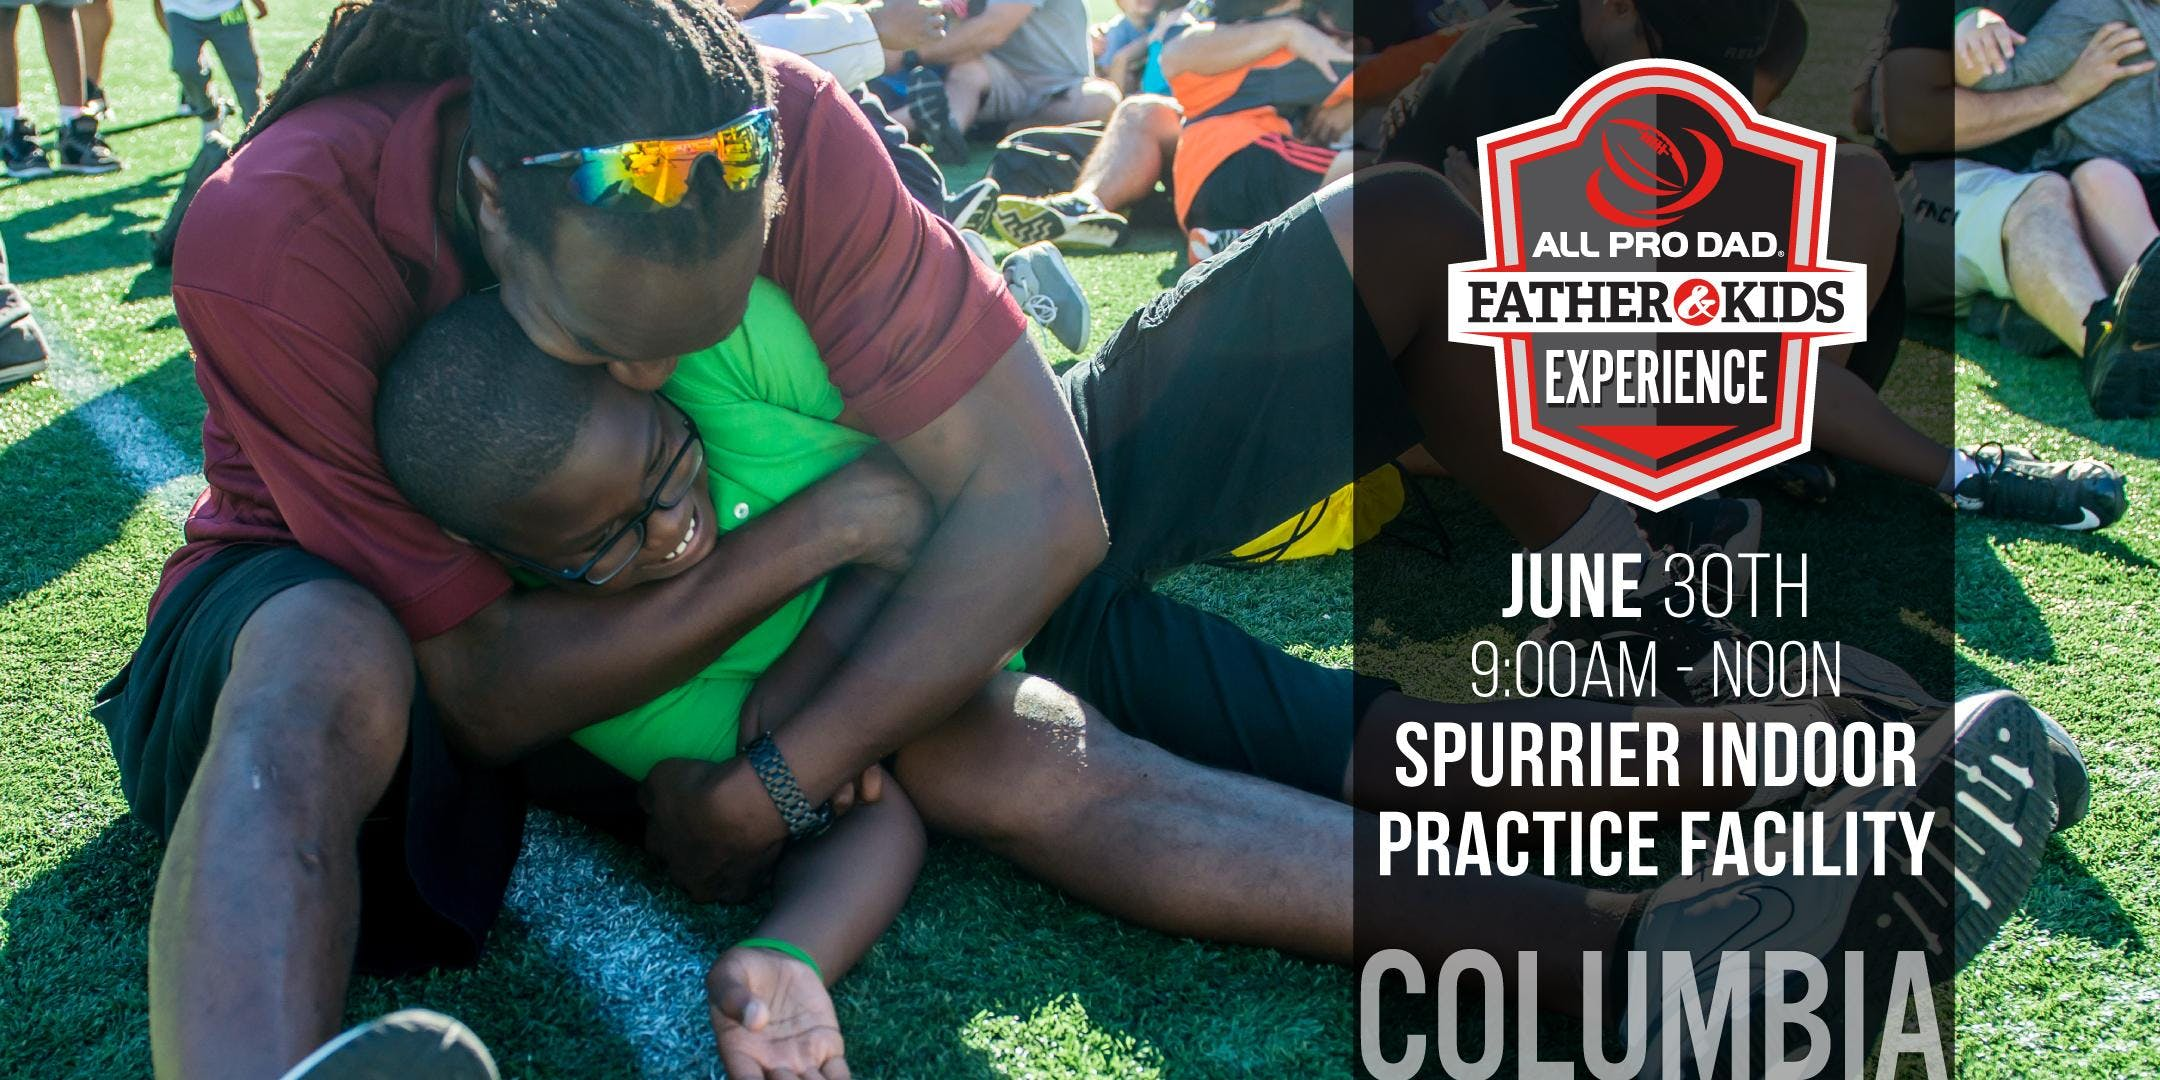 Columbia All Pro Dad Father &amp Kids Experience at The University of South Carolina